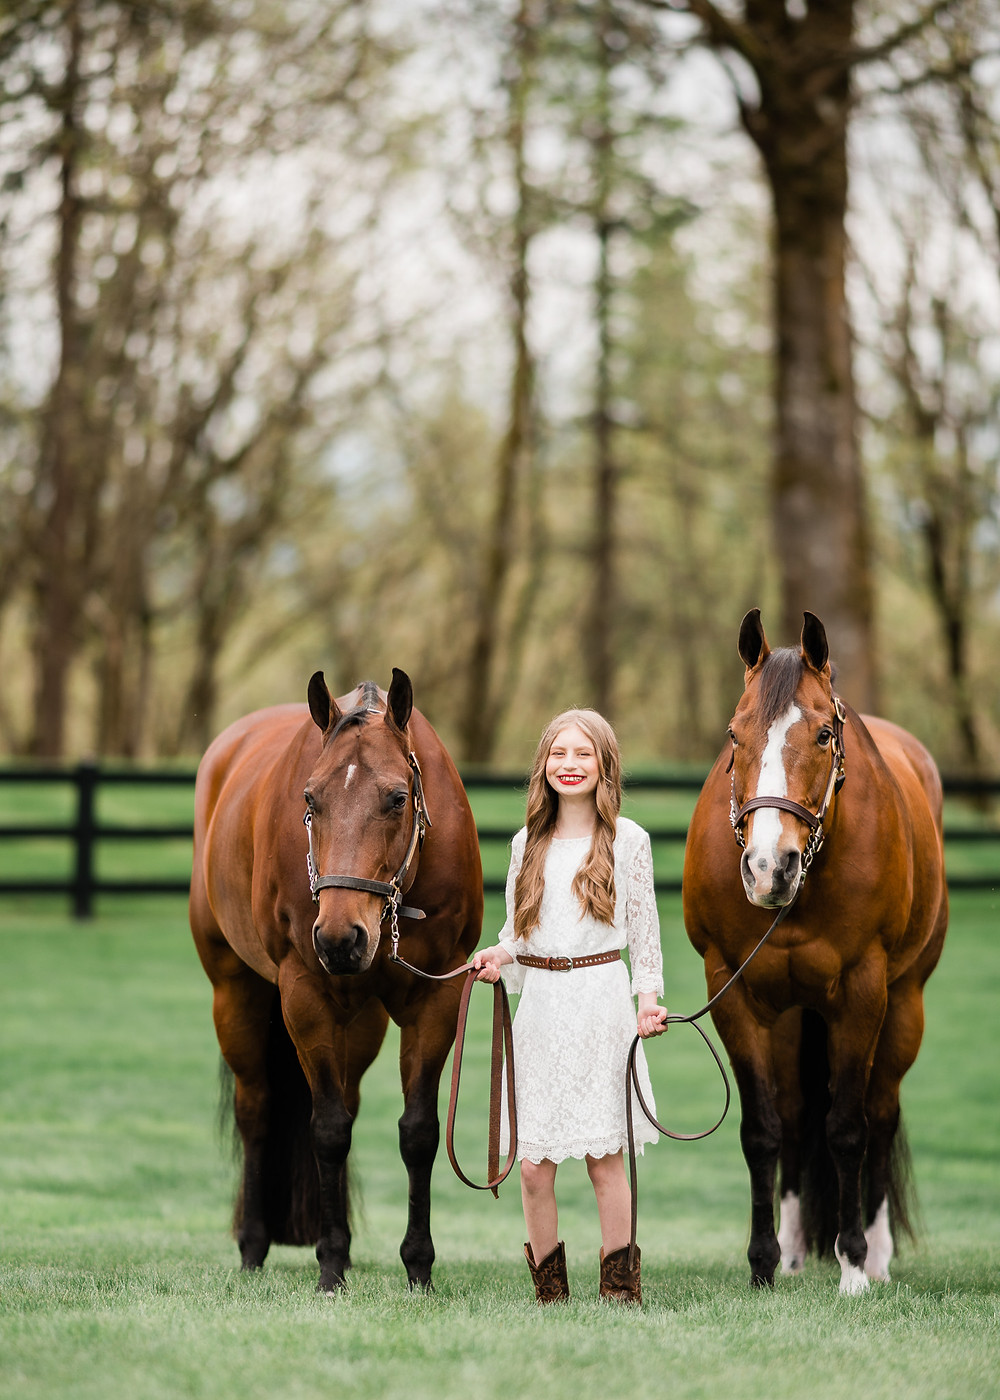 Victoria Coombs with her two special ponies